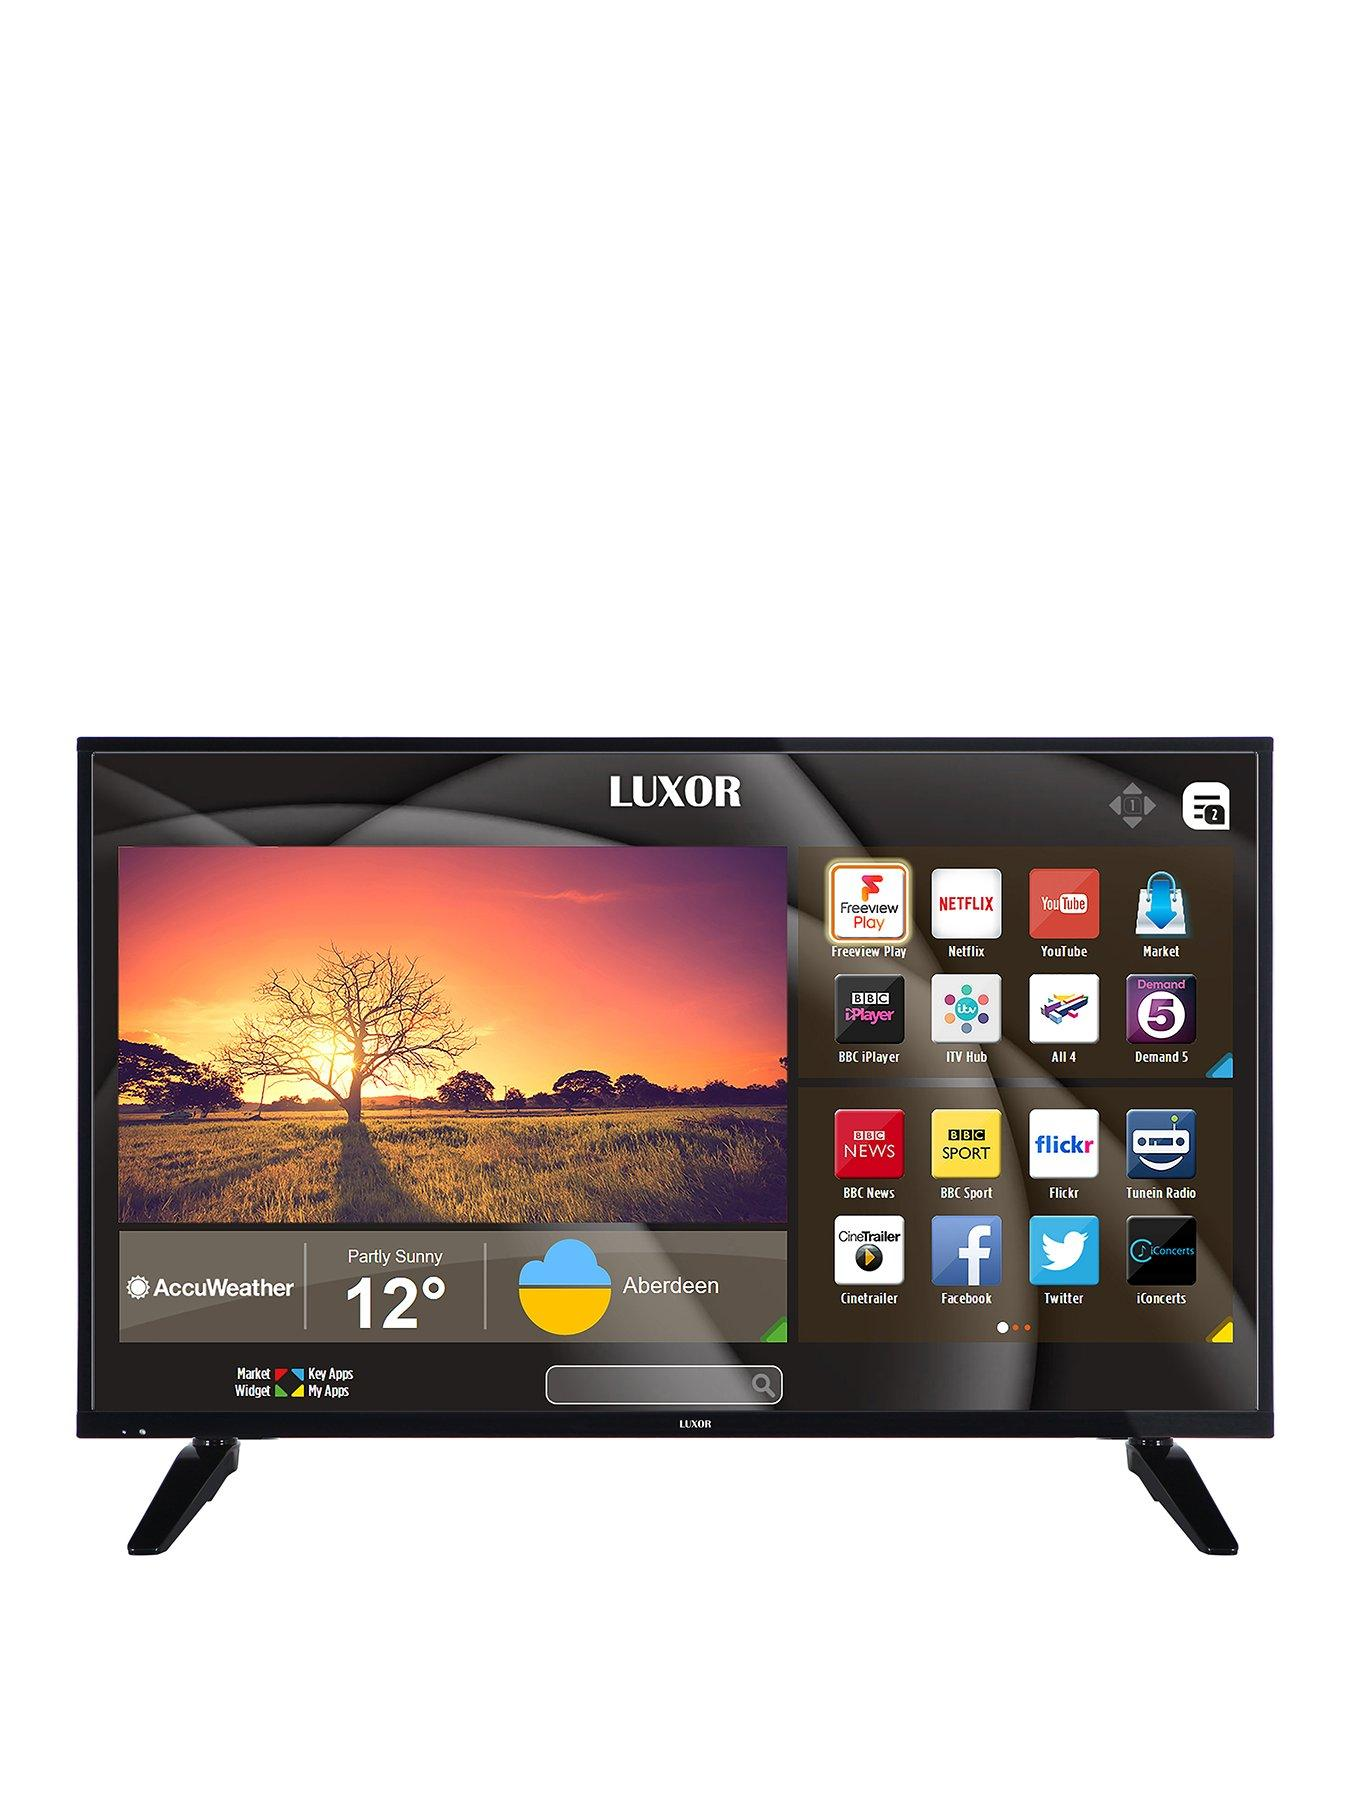 Compare prices for Luxor 43 Inch Full HD Freeview Smart TV